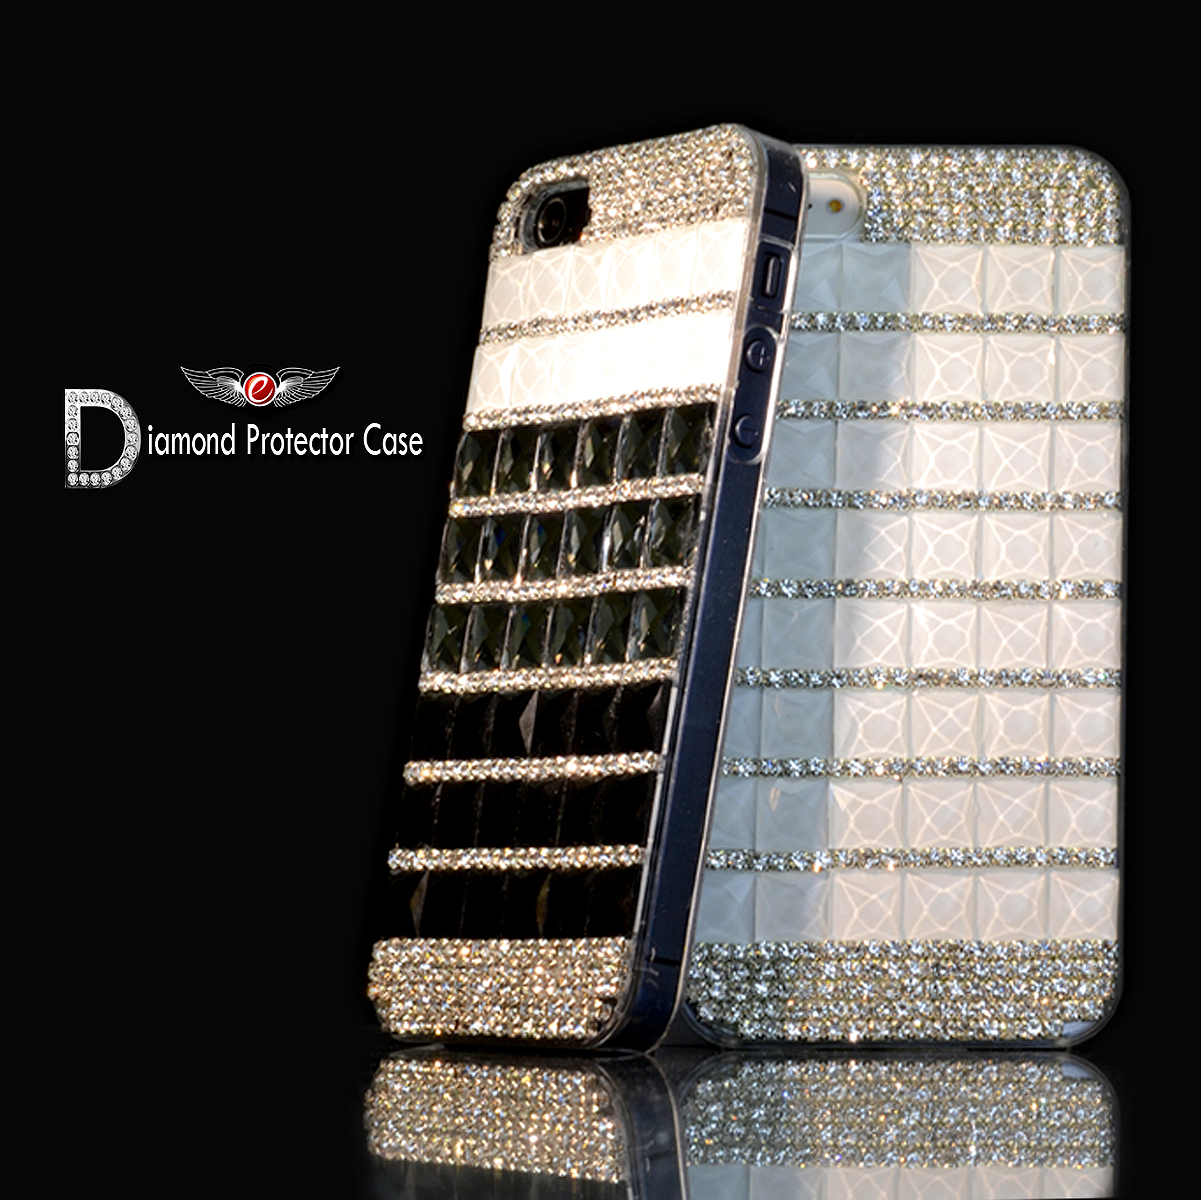 Diamond Protector Case